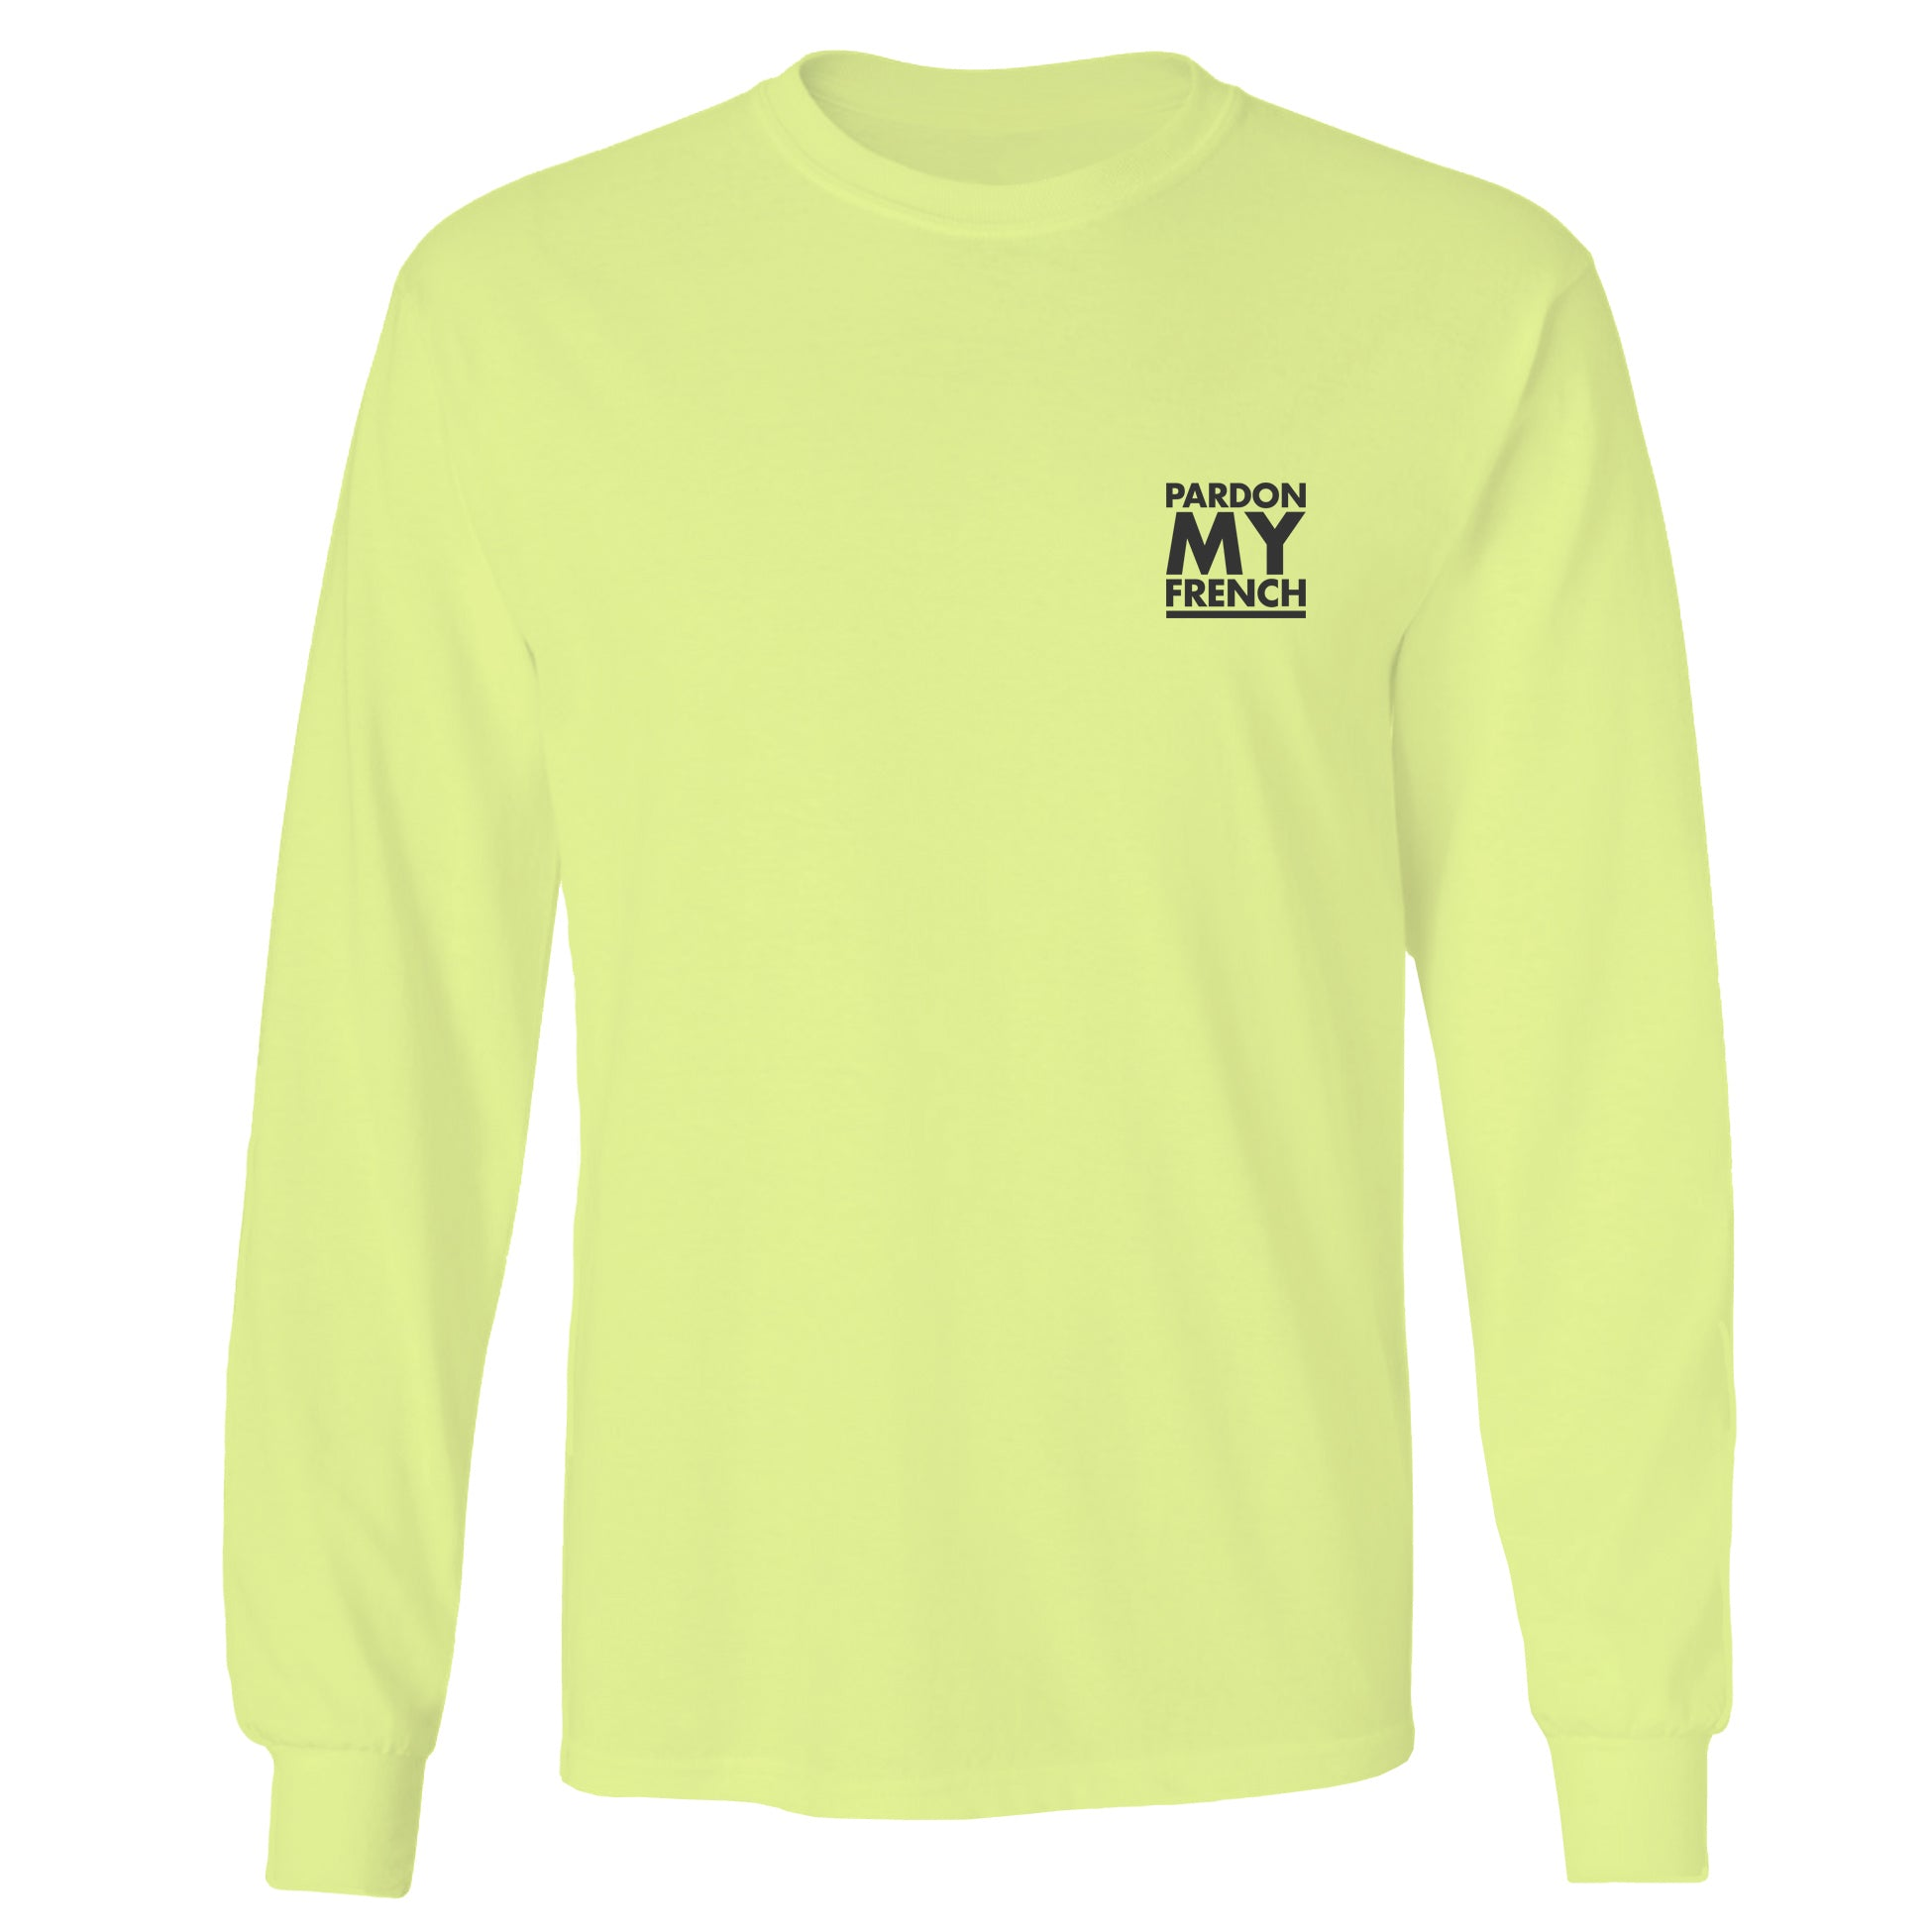 DYED NEON YELLOW LONG SLEEVES T-SHIRT